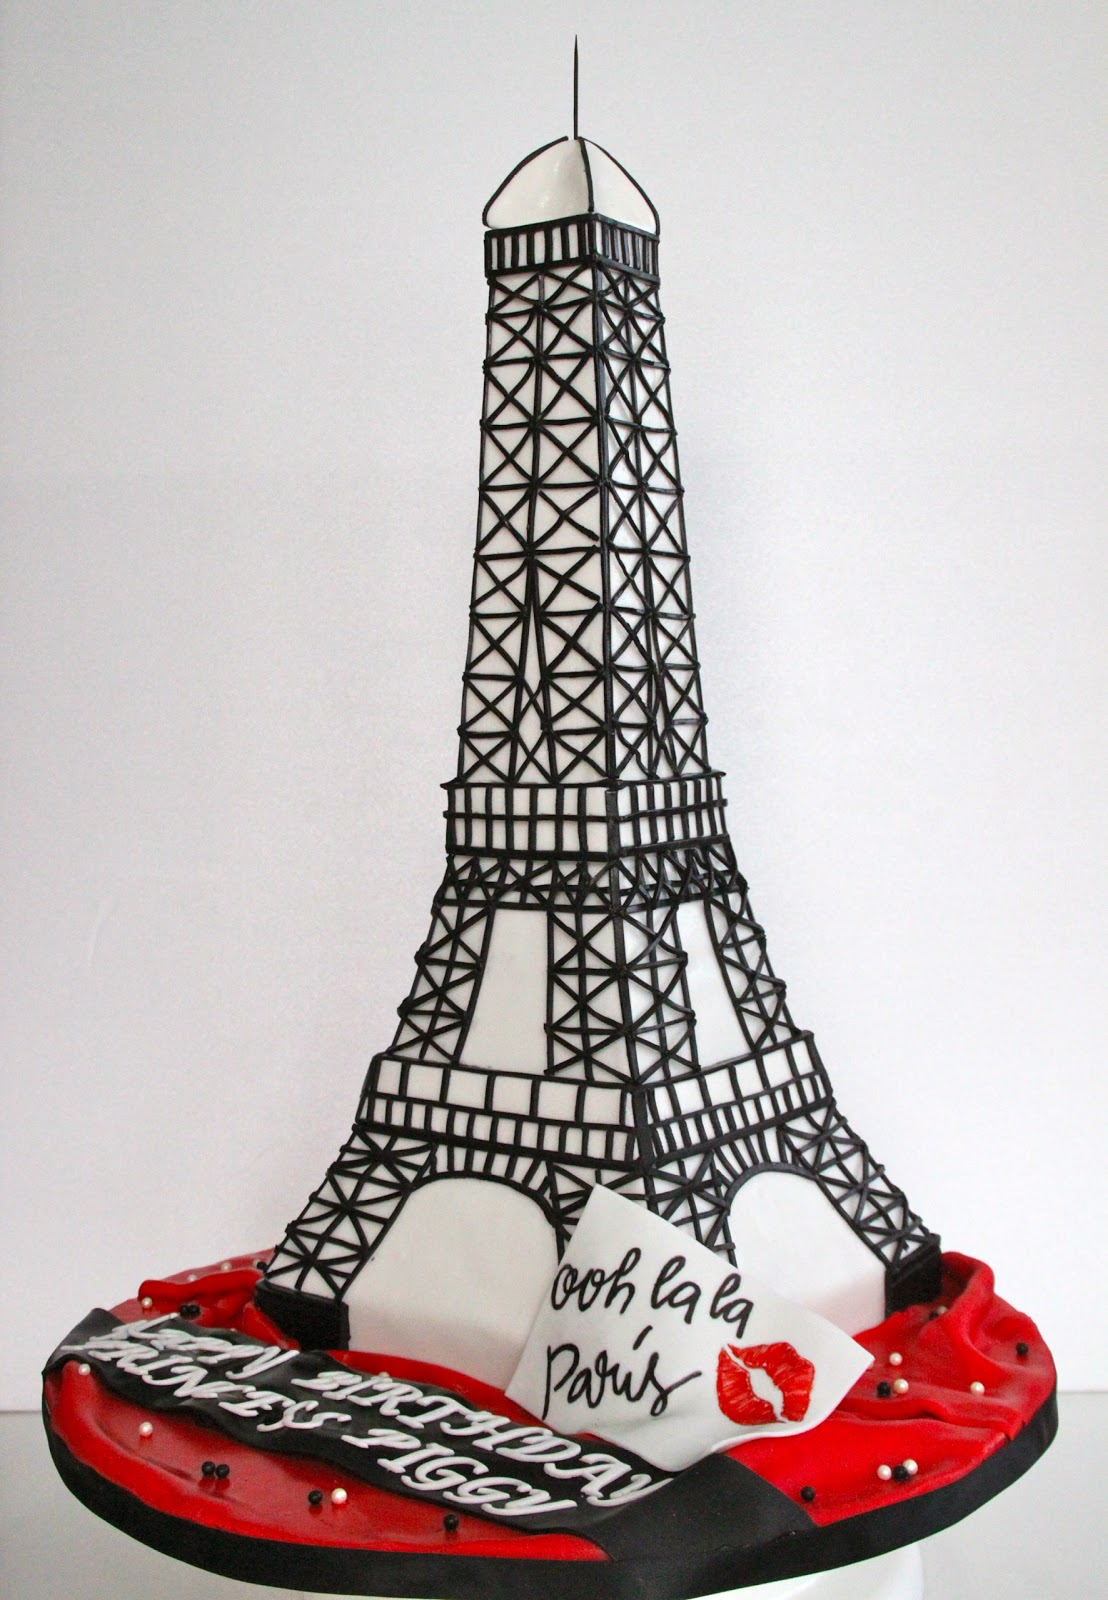 Celebrate with Cake!: Eiffel Tower Cake